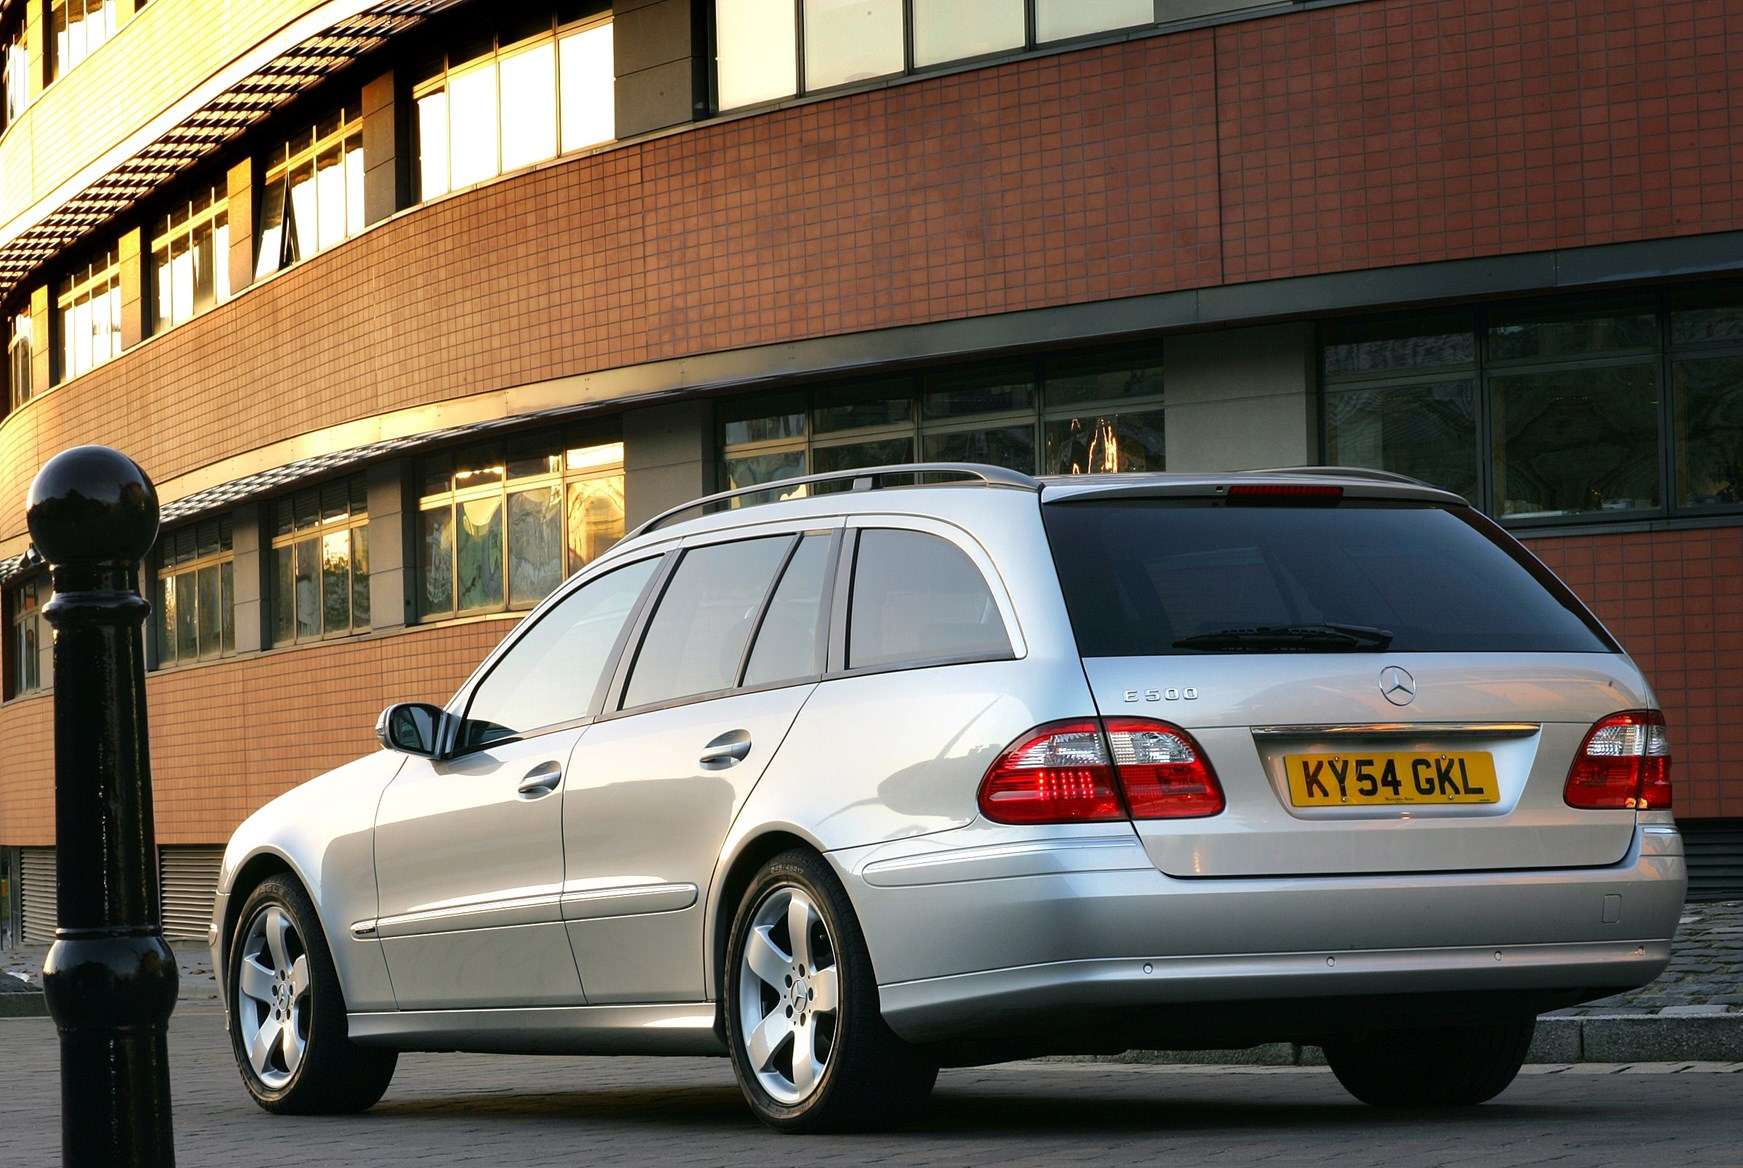 Used Mercedes-Benz E-Class Estate (2003 - 2008) Review | Parkers